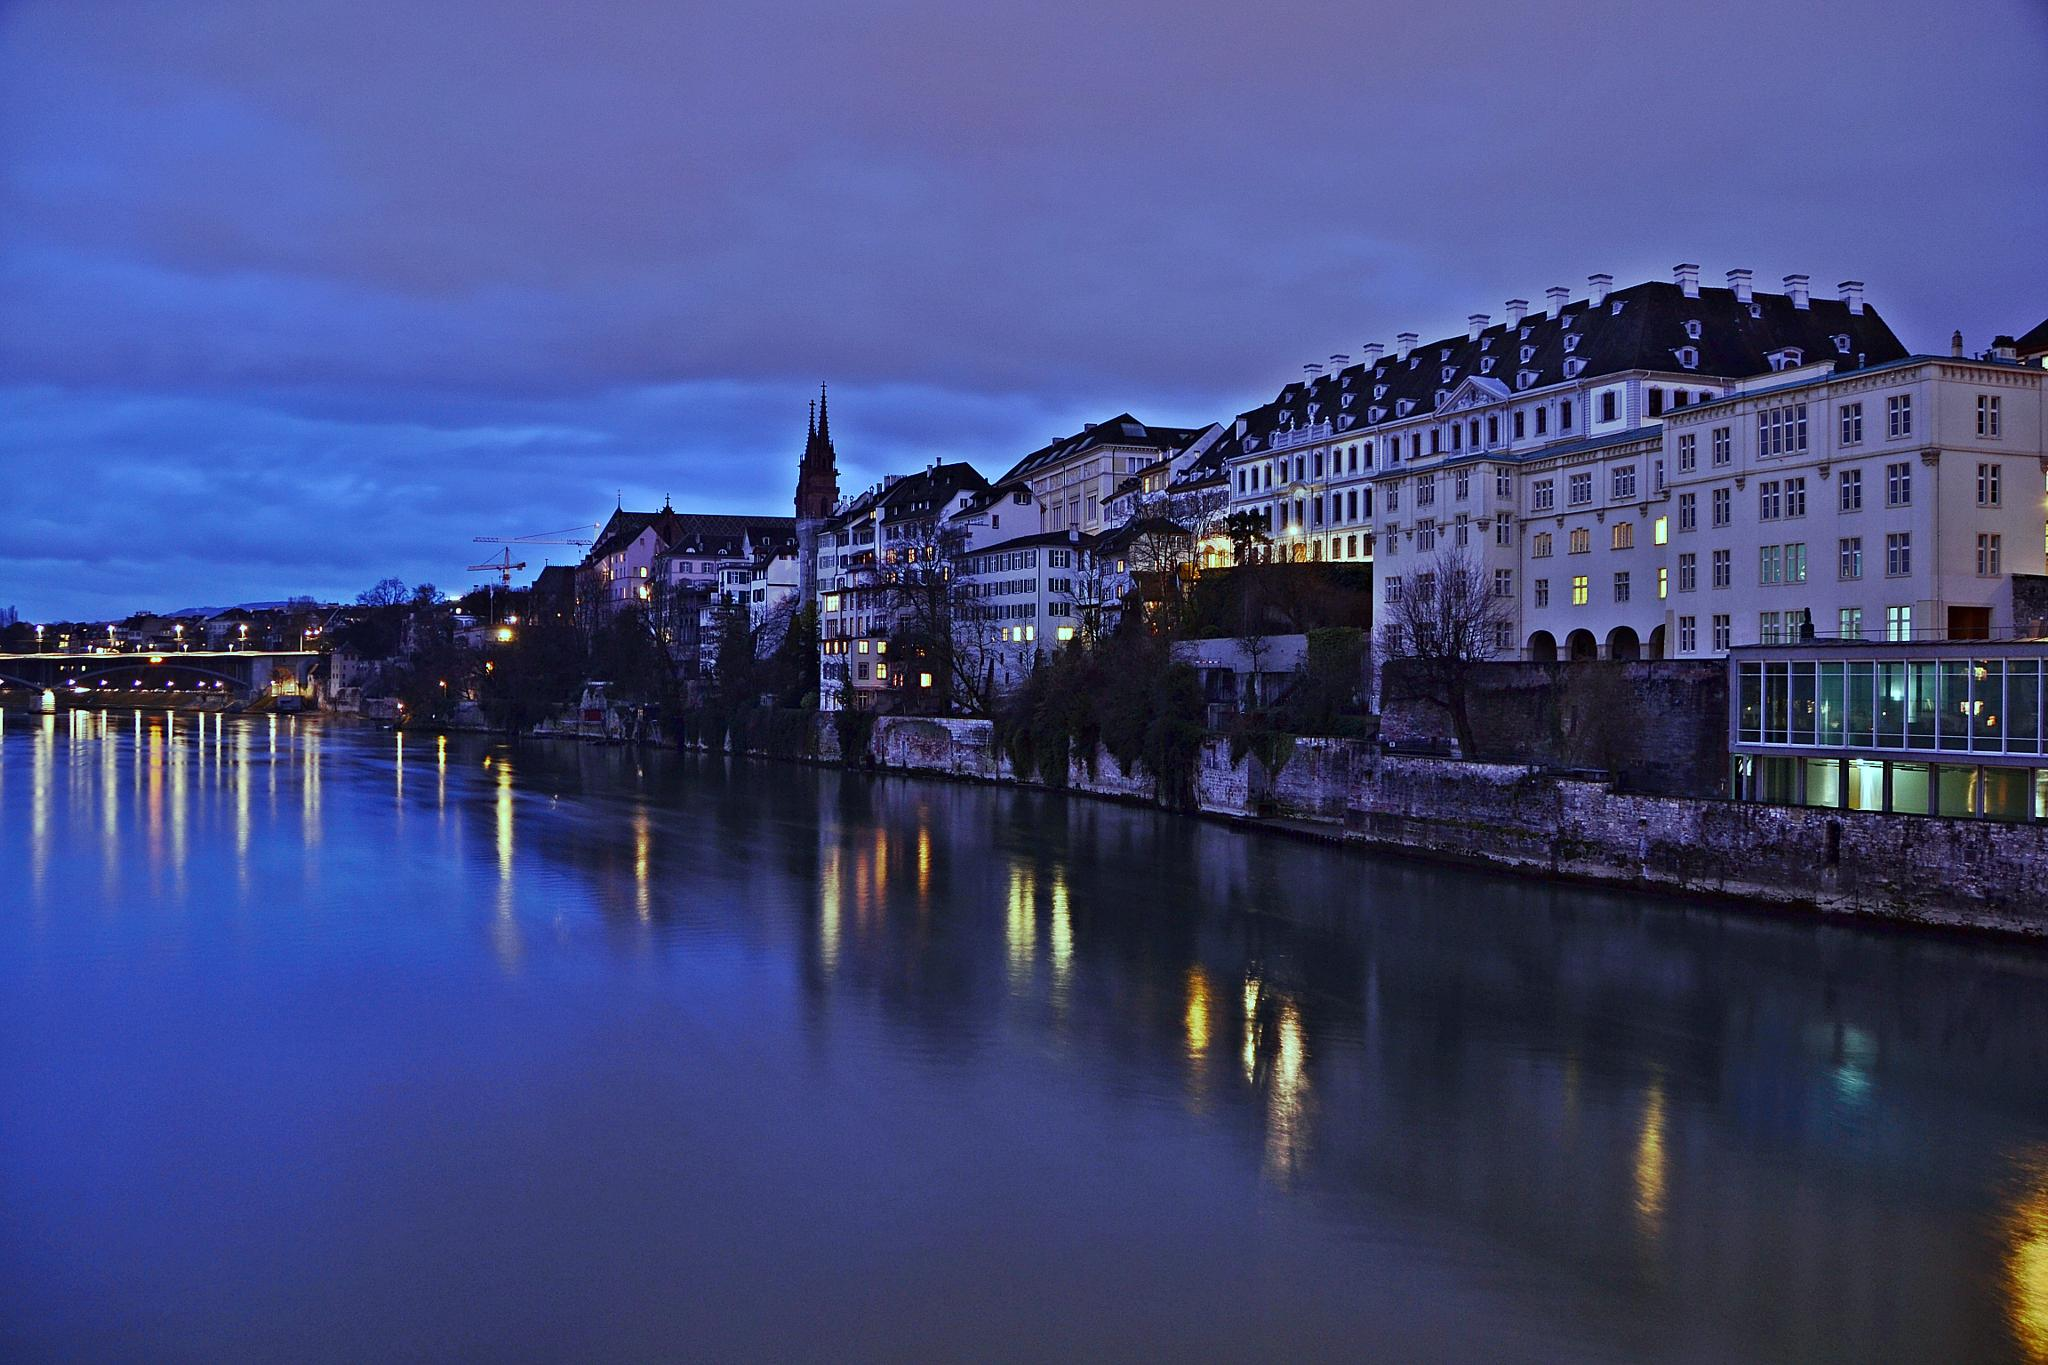 Basel by night. by A.Hikmet Karaca